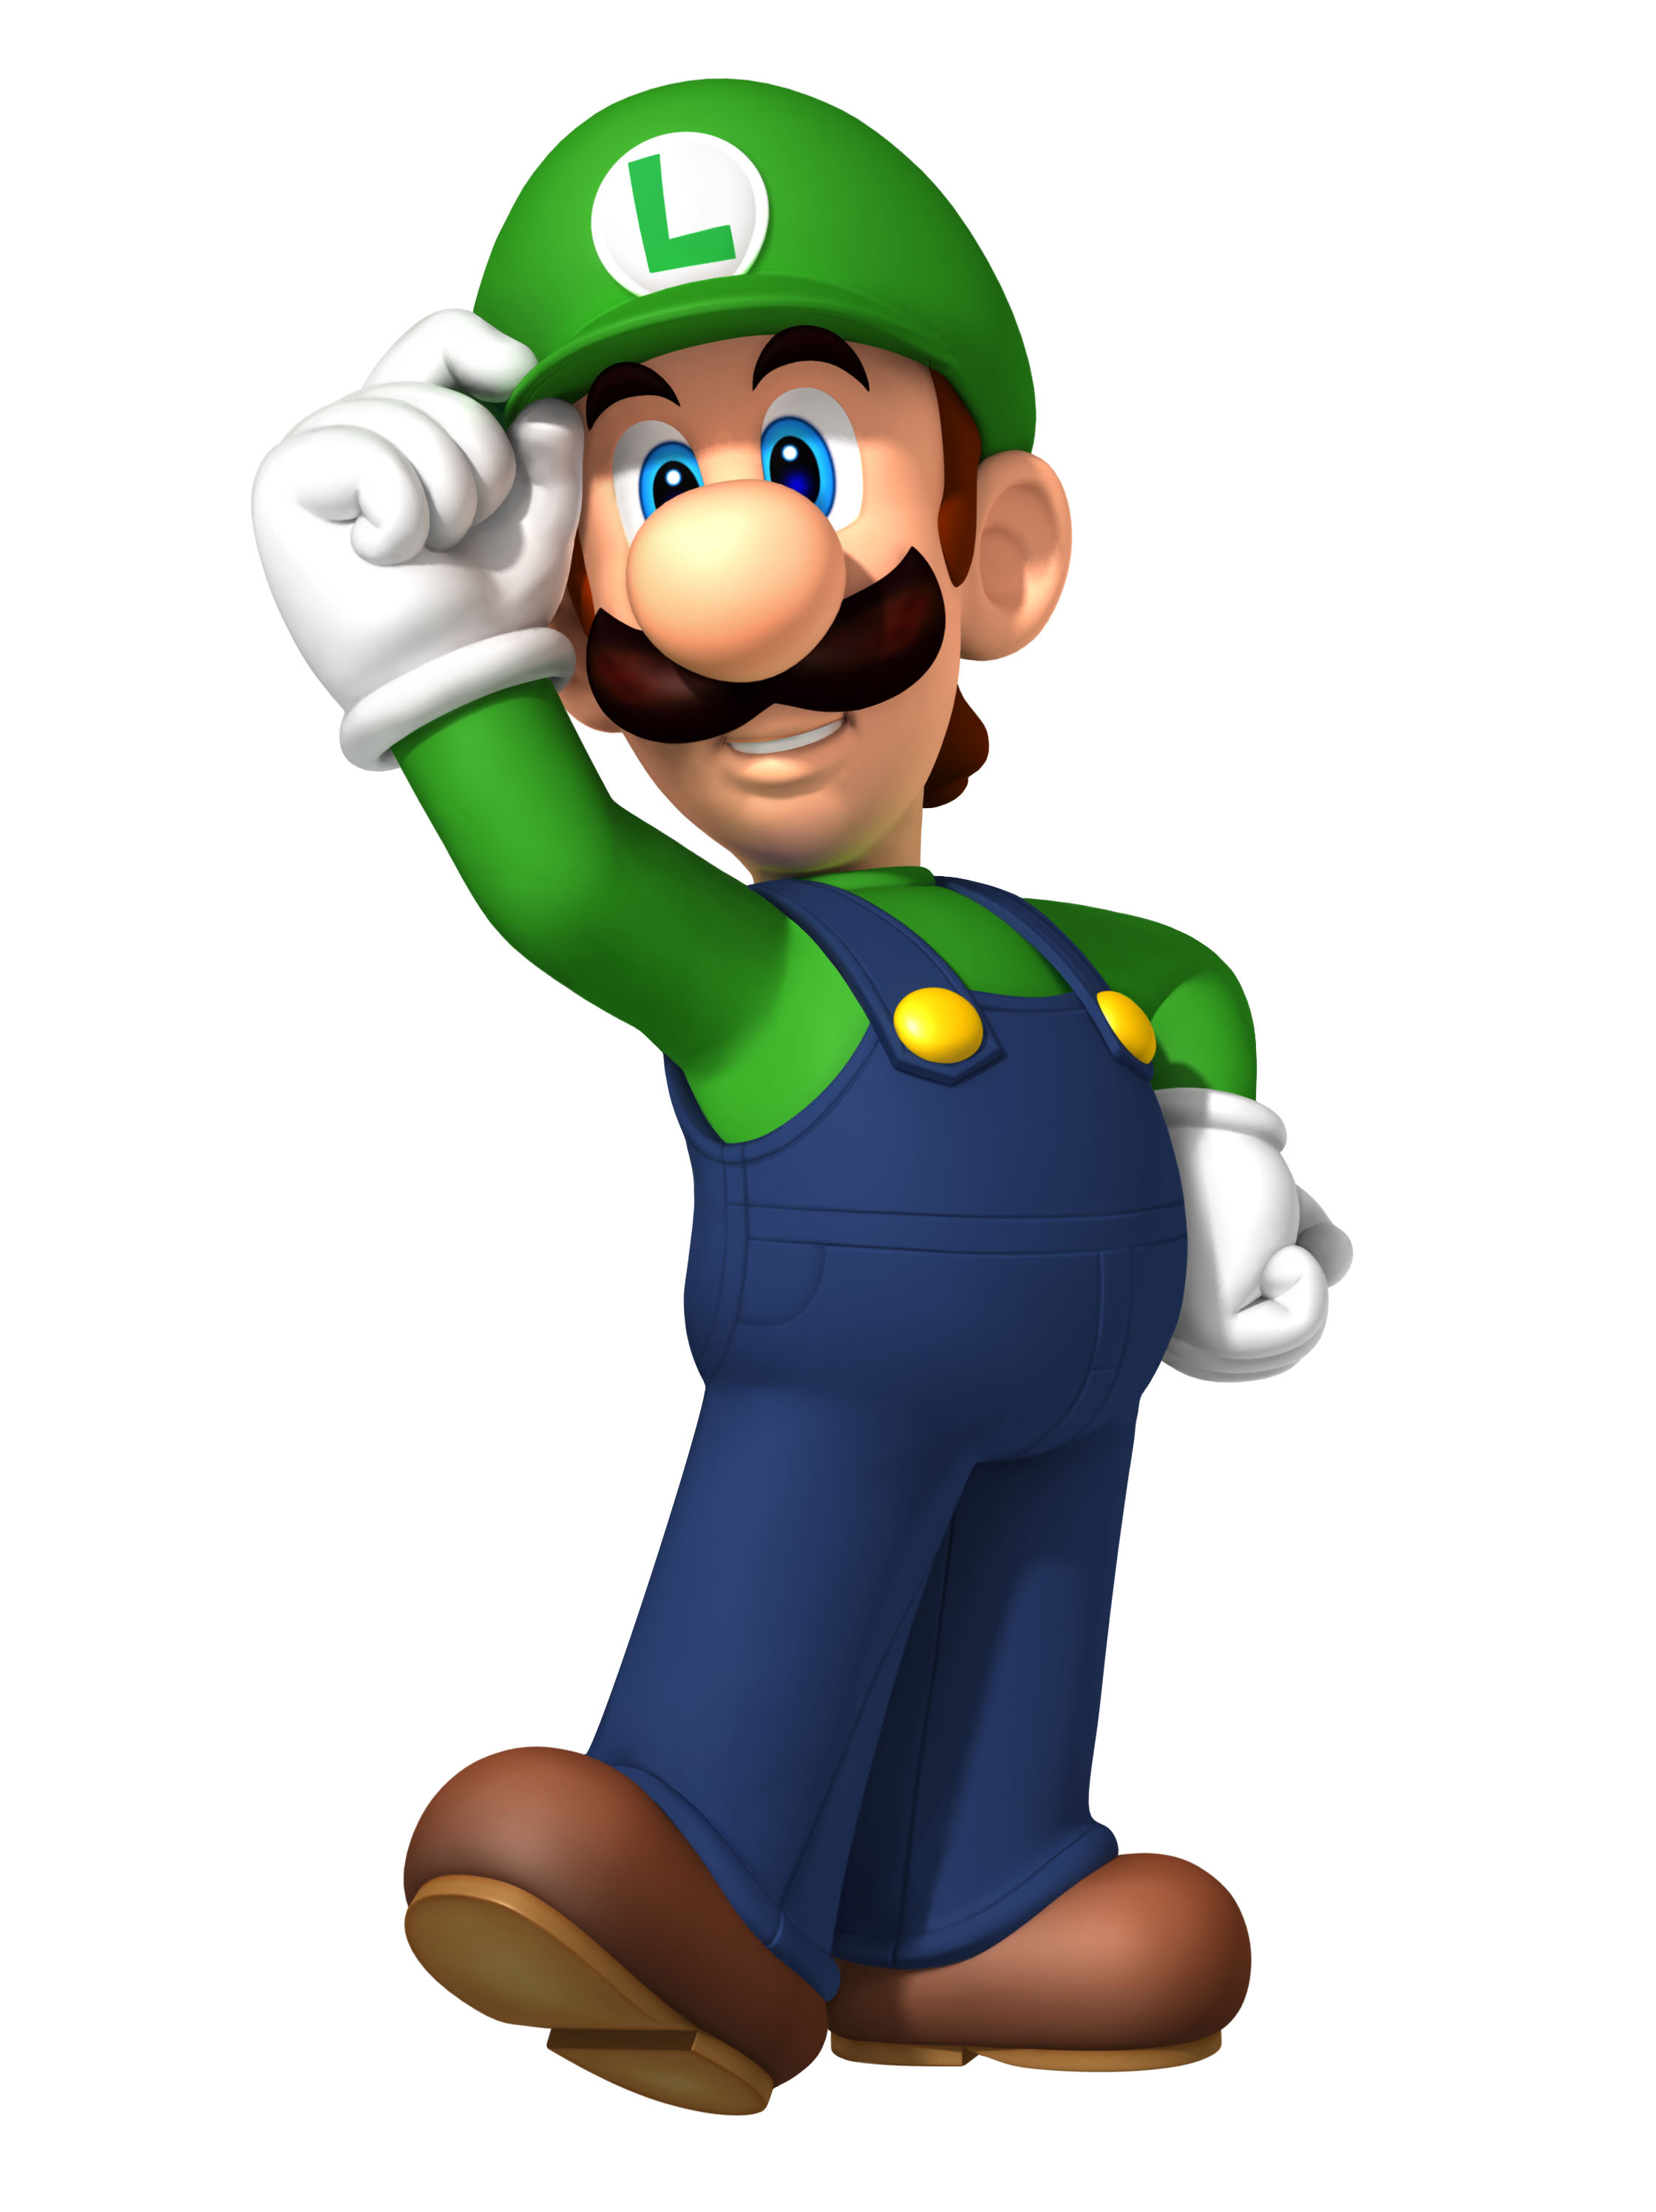 High Resolution Wallpaper | Luigi 2240x2992 px